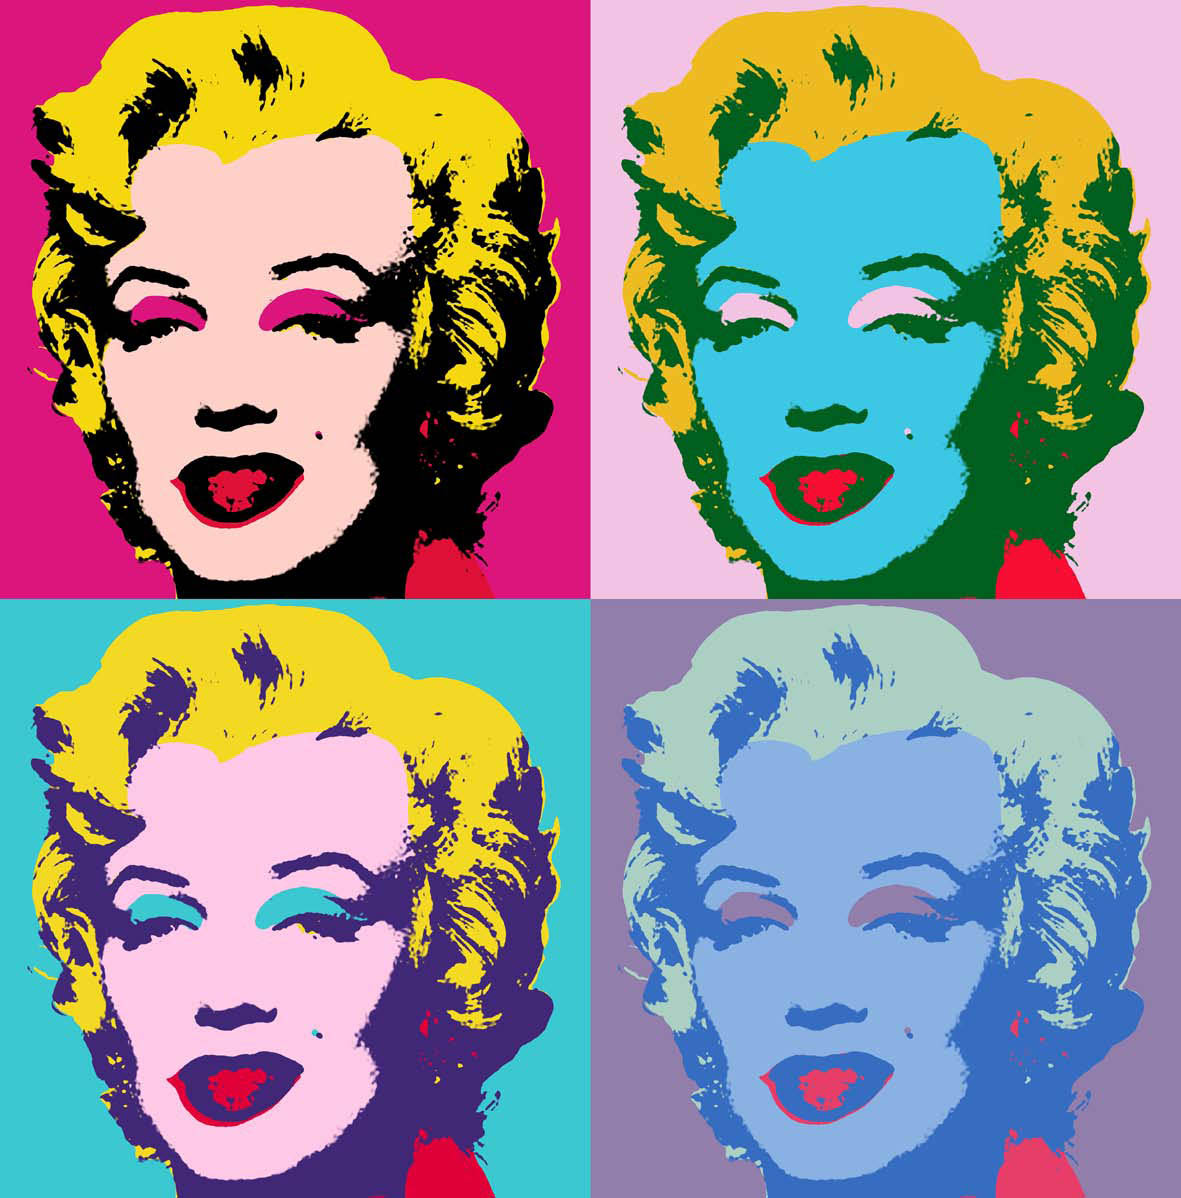 Art History: Pop Art Motifs That Still Influence Modern Design